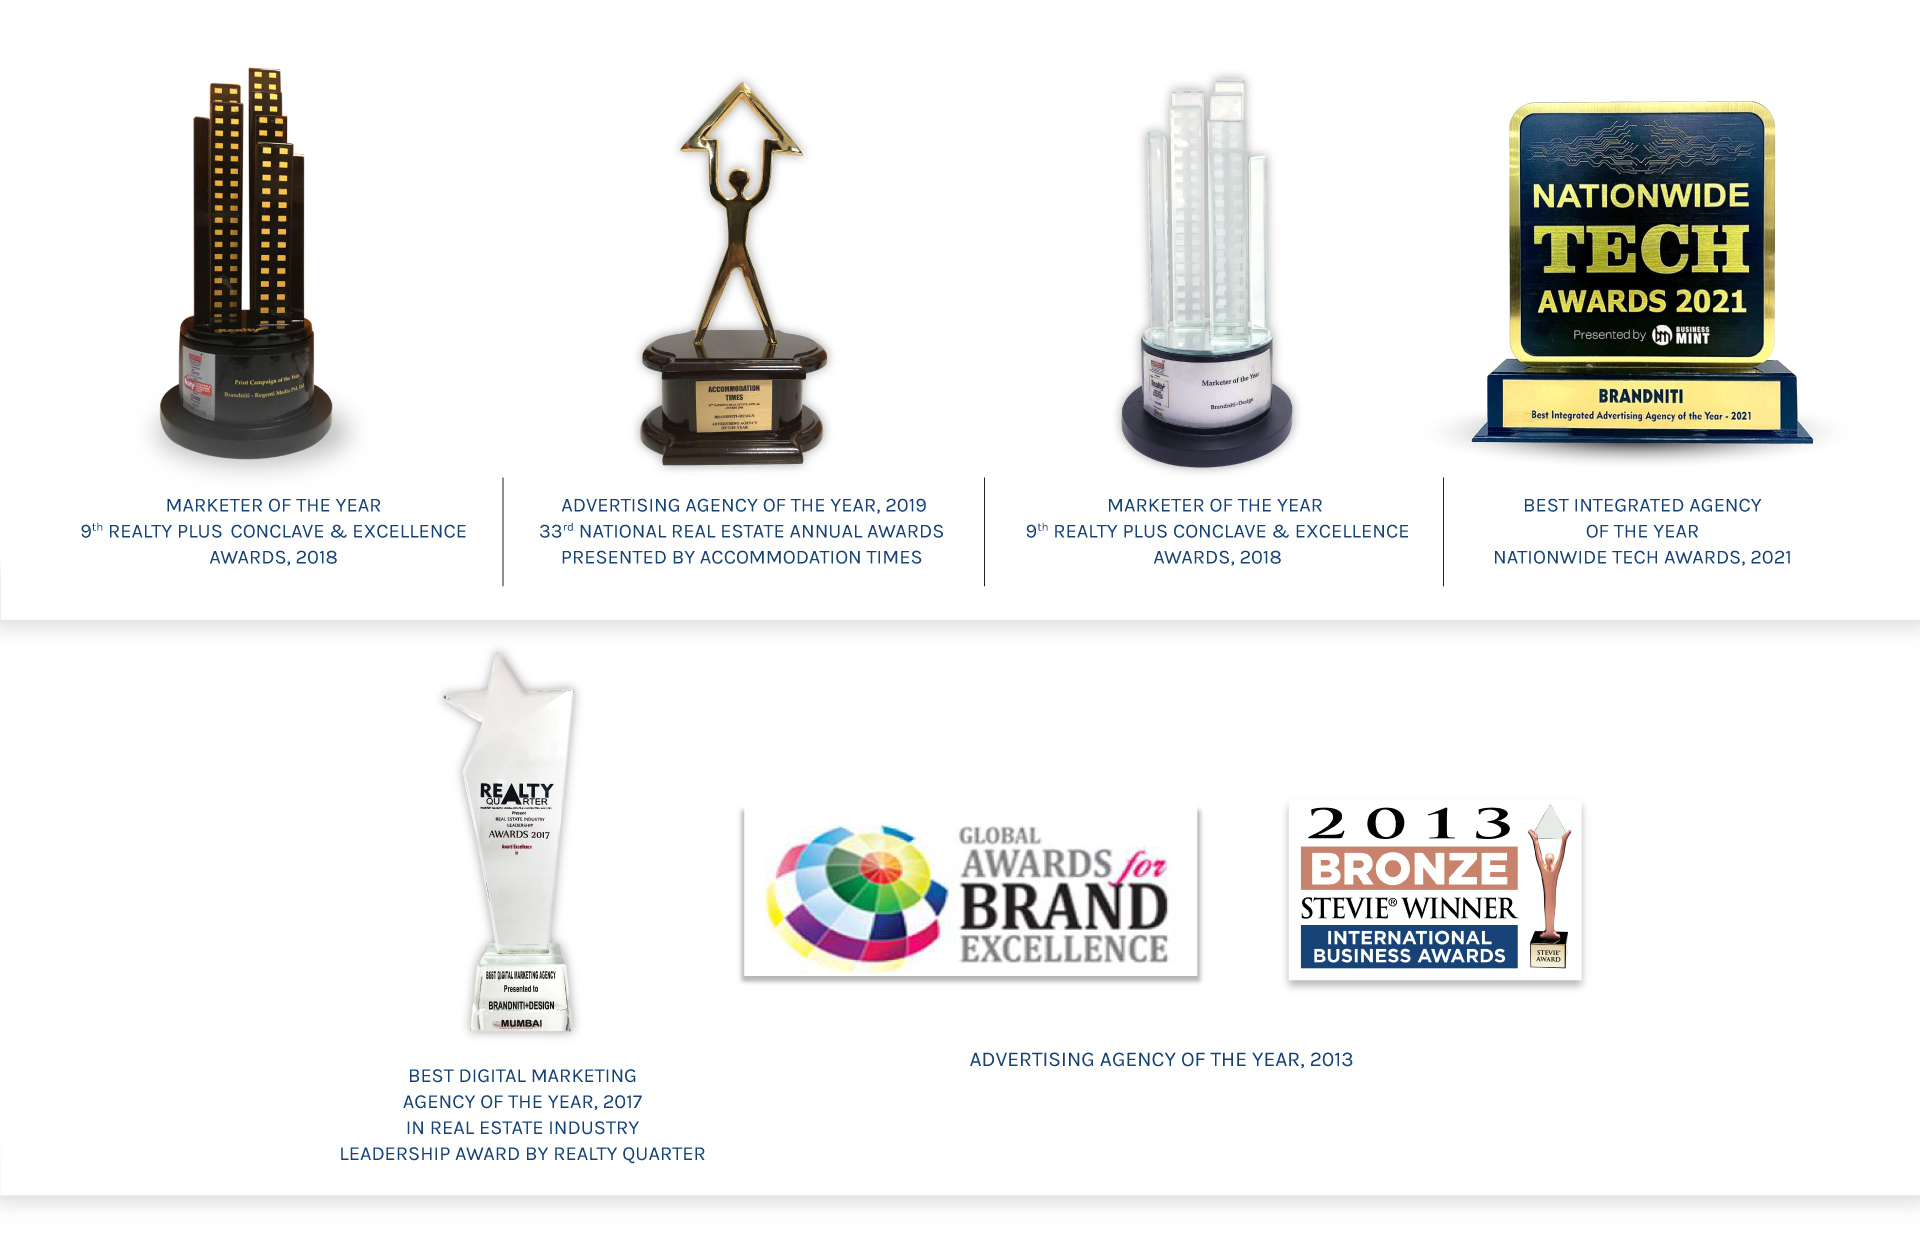 Brandniti-Excellence-Awards